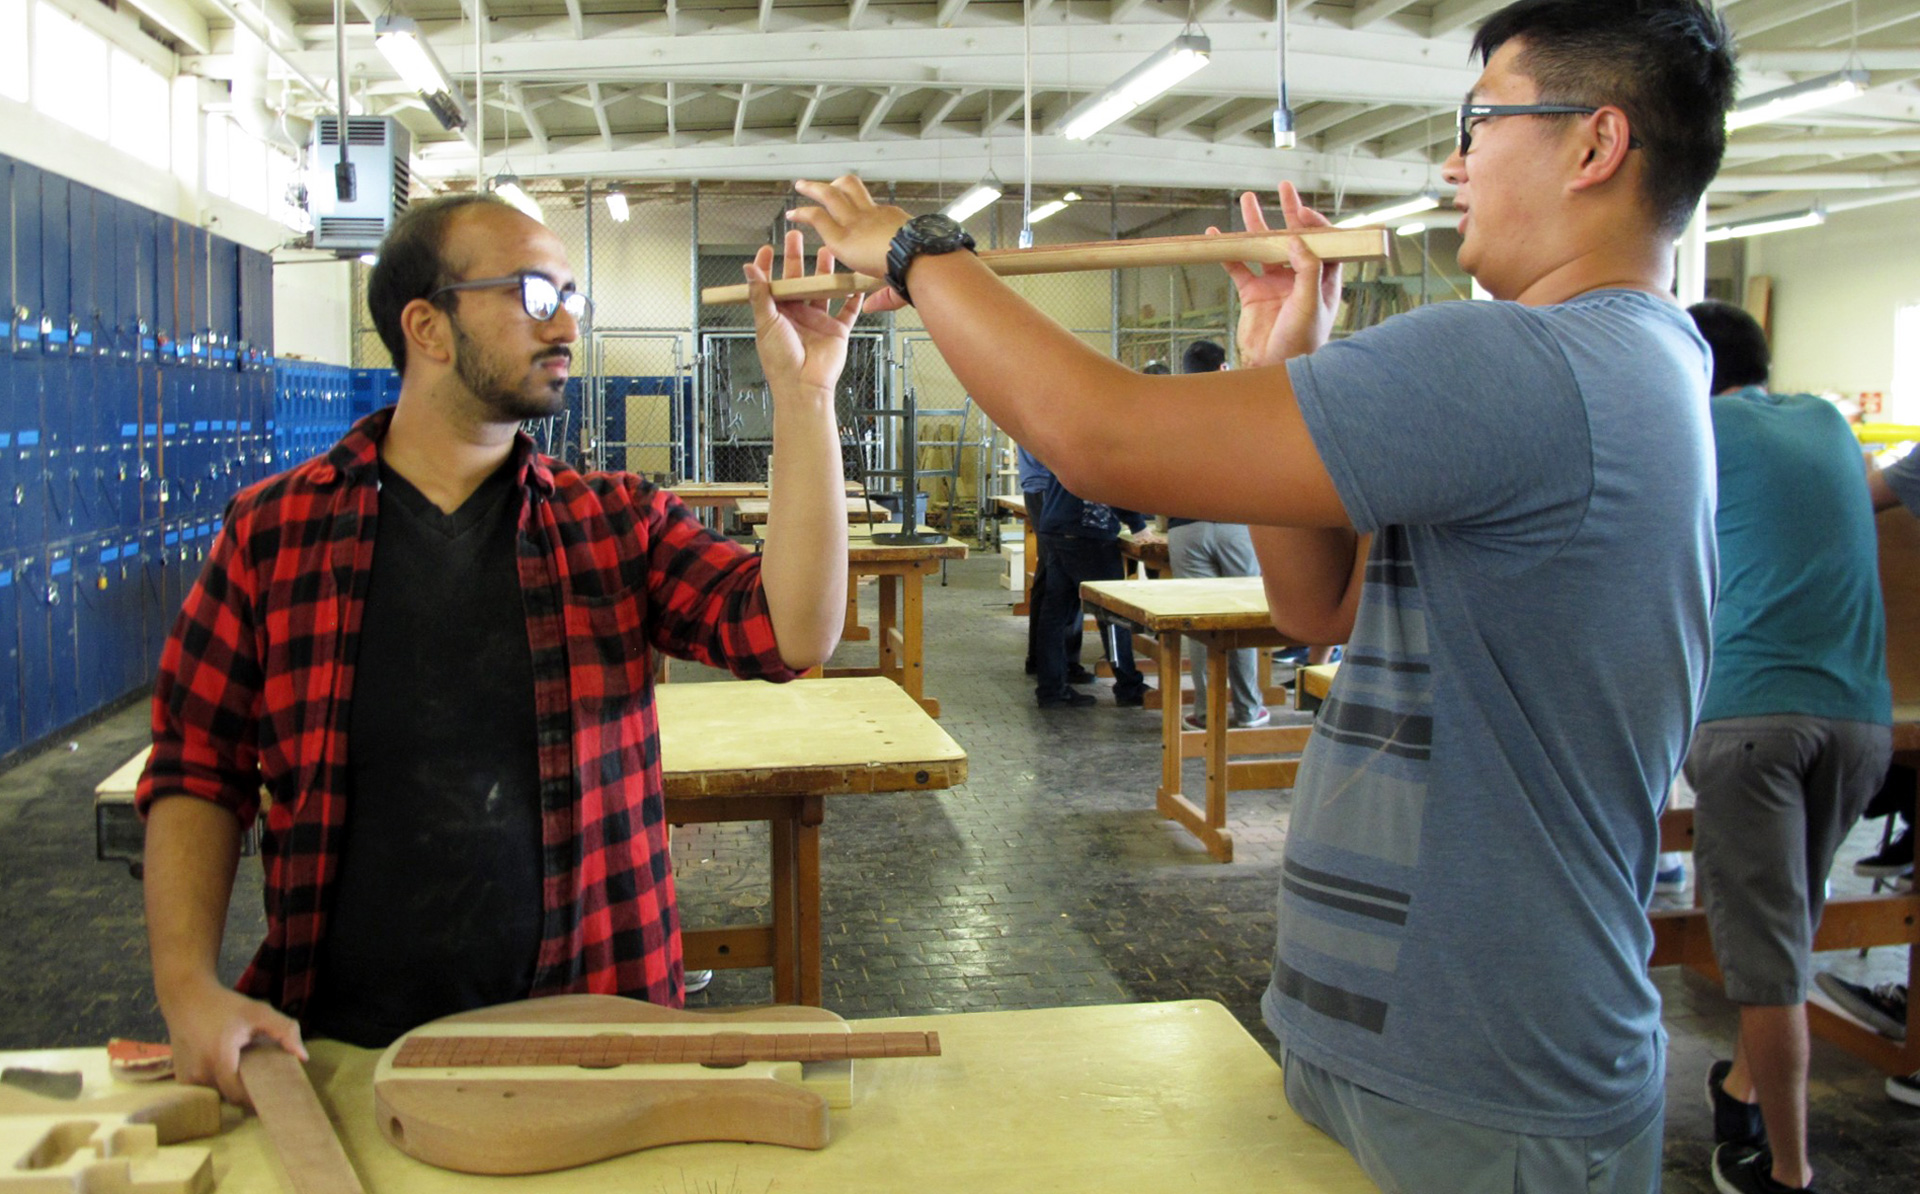 Senior Timothy Lee (R) checks out the curve on his fretboard with help from classmate Farhan Saleh. The two are taking wood shop and physics at Camarillo High School as part of the STEM Guitar Project.